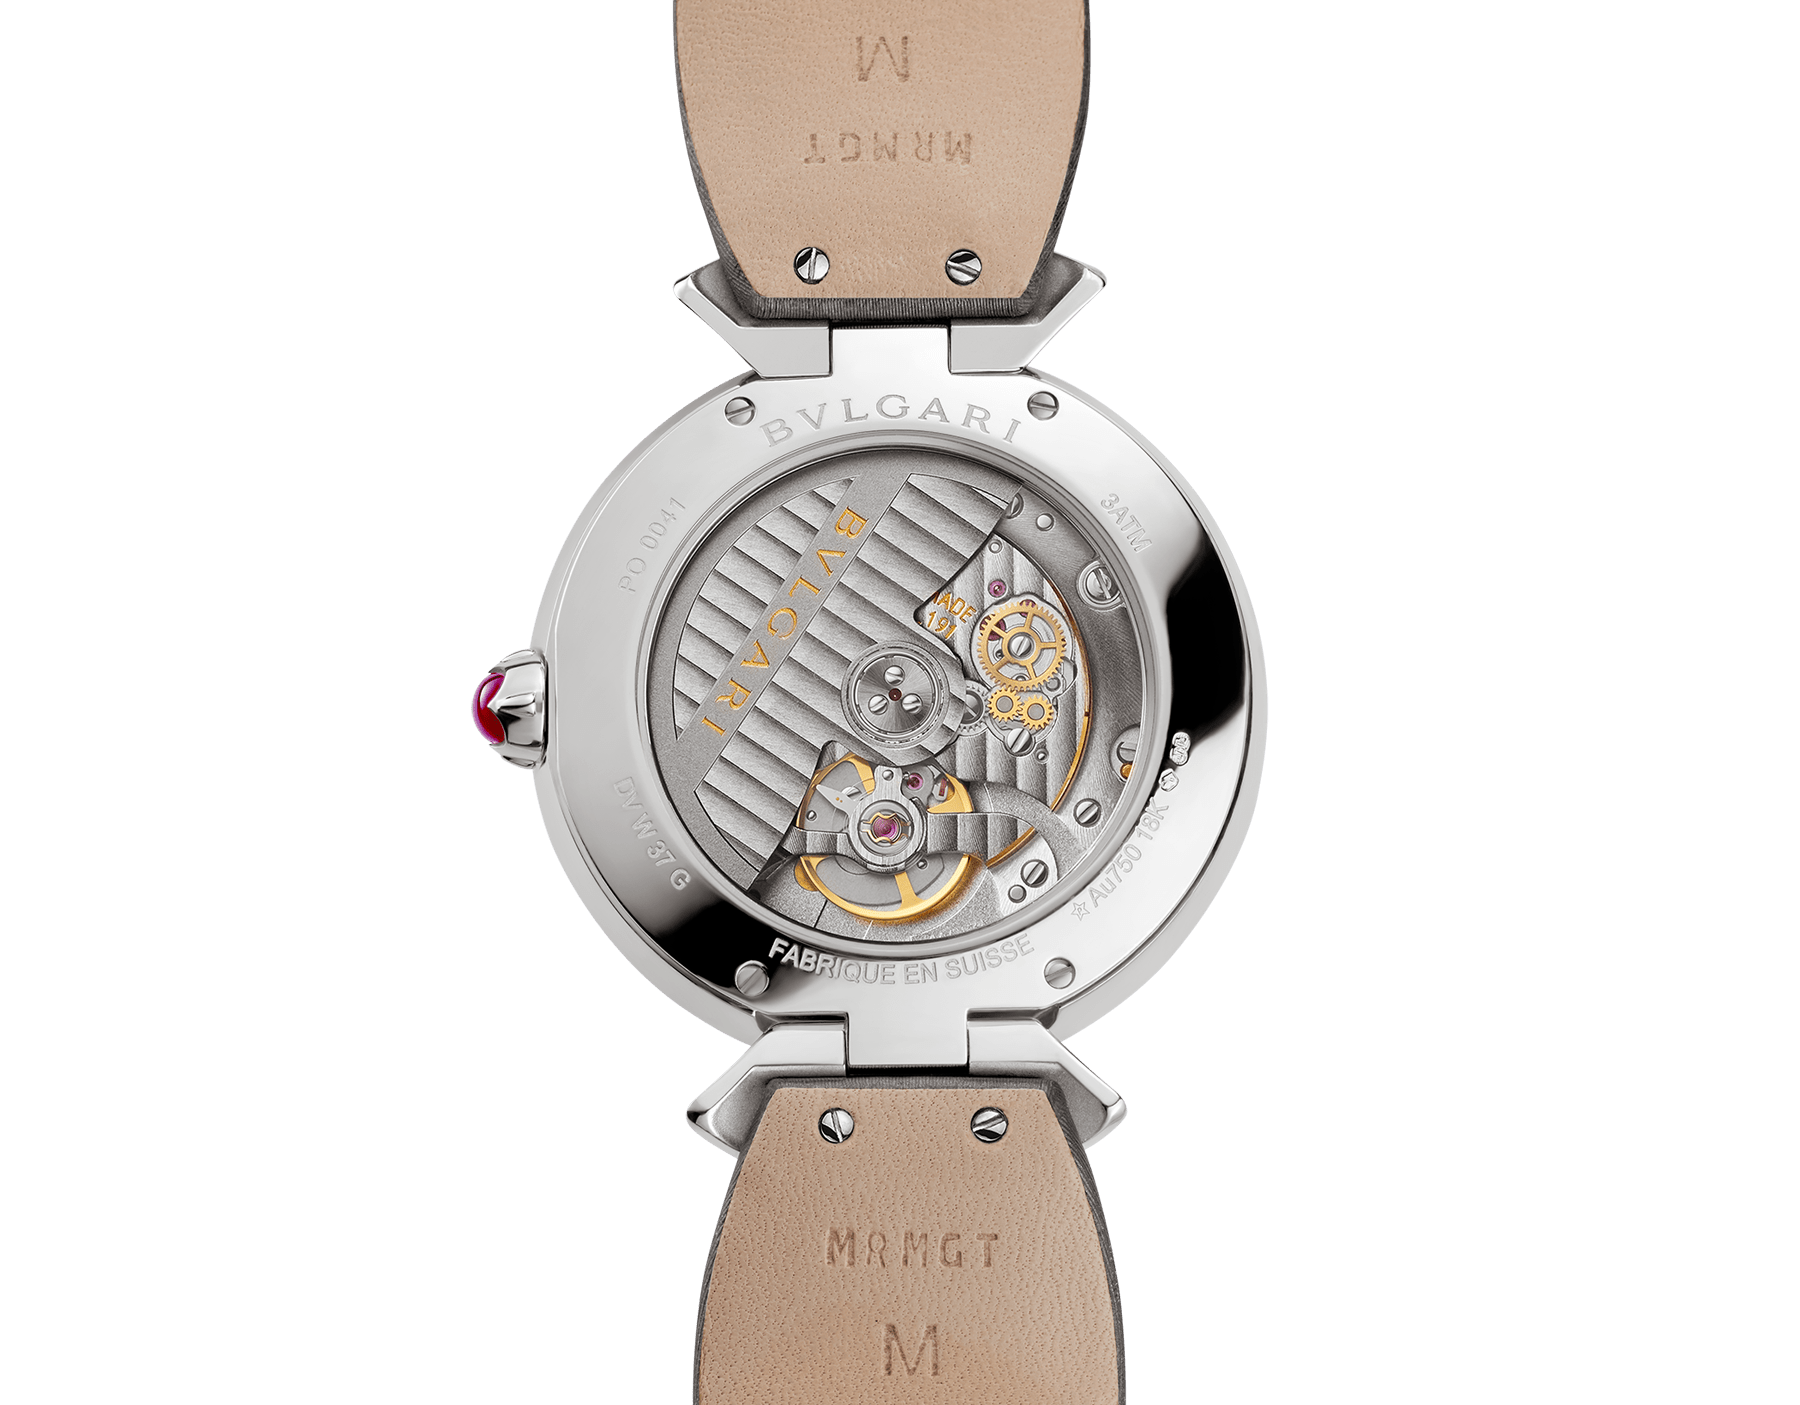 DIVAS' DREAM watch with 18 kt white gold case set with brilliant-cut diamonds, acetate dial, diamond indexes and grey satin bracelet 102576 image 4